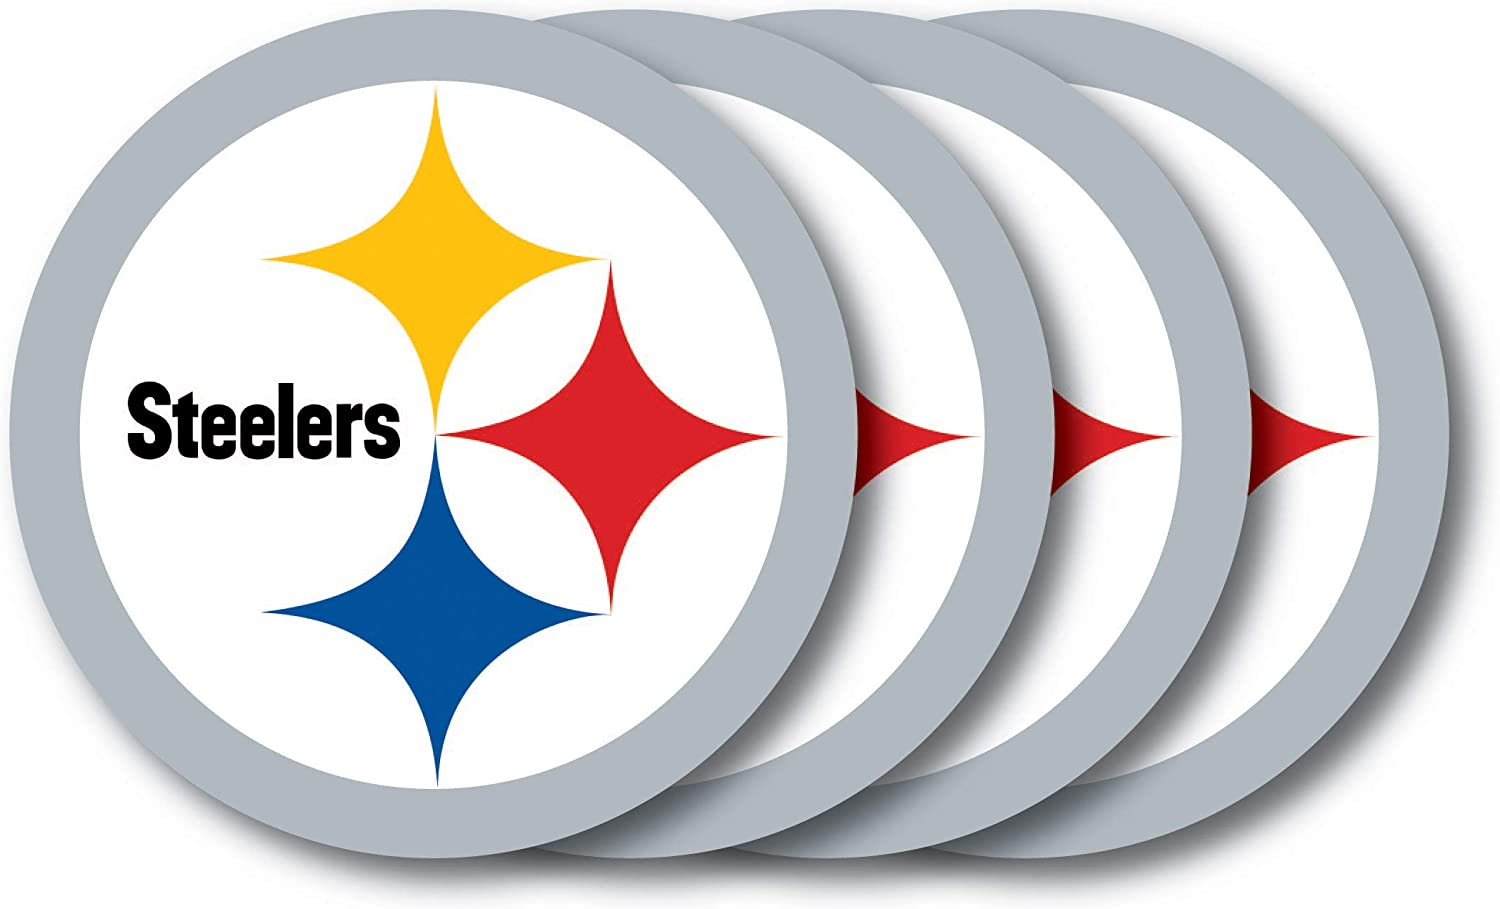 NFL Pittsburgh Steelers Vinyl Coaster Set (Pack of 4)